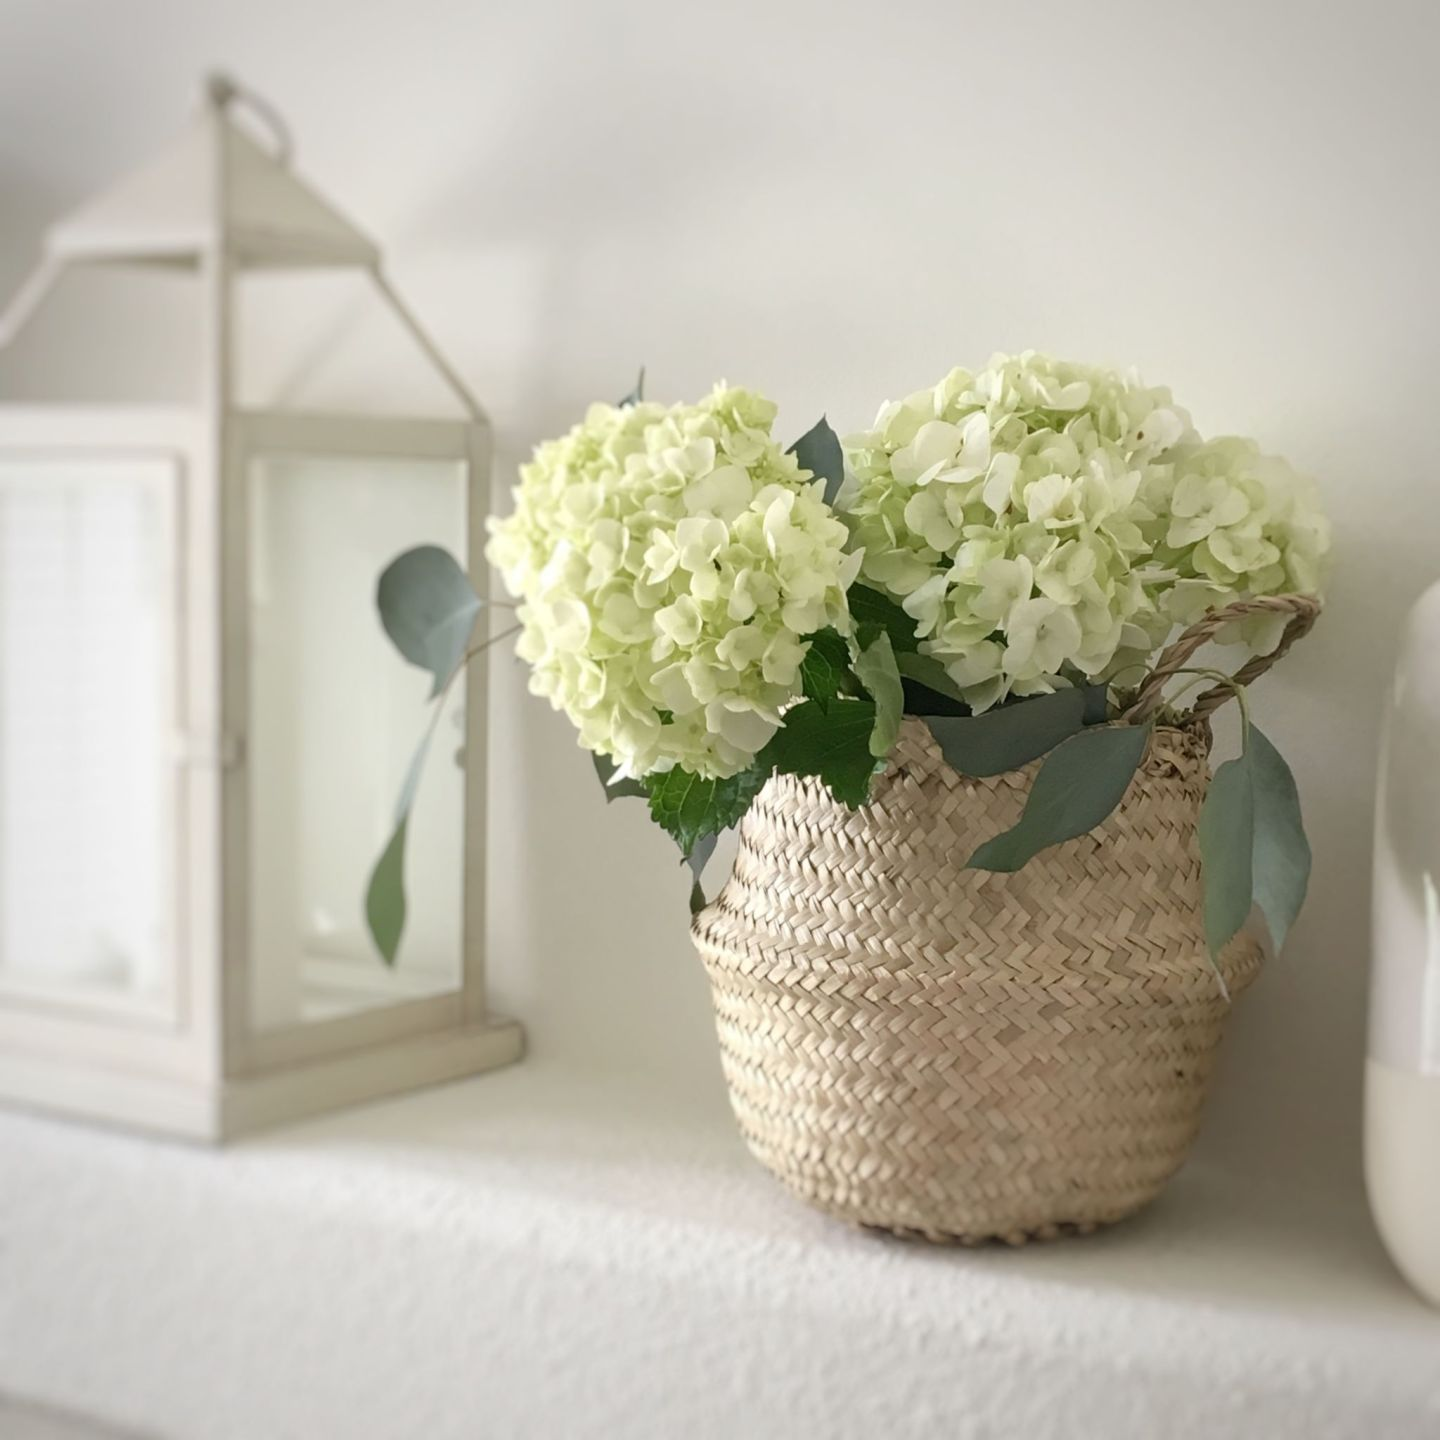 Decorating Your Mantle: Easy Styling Tips